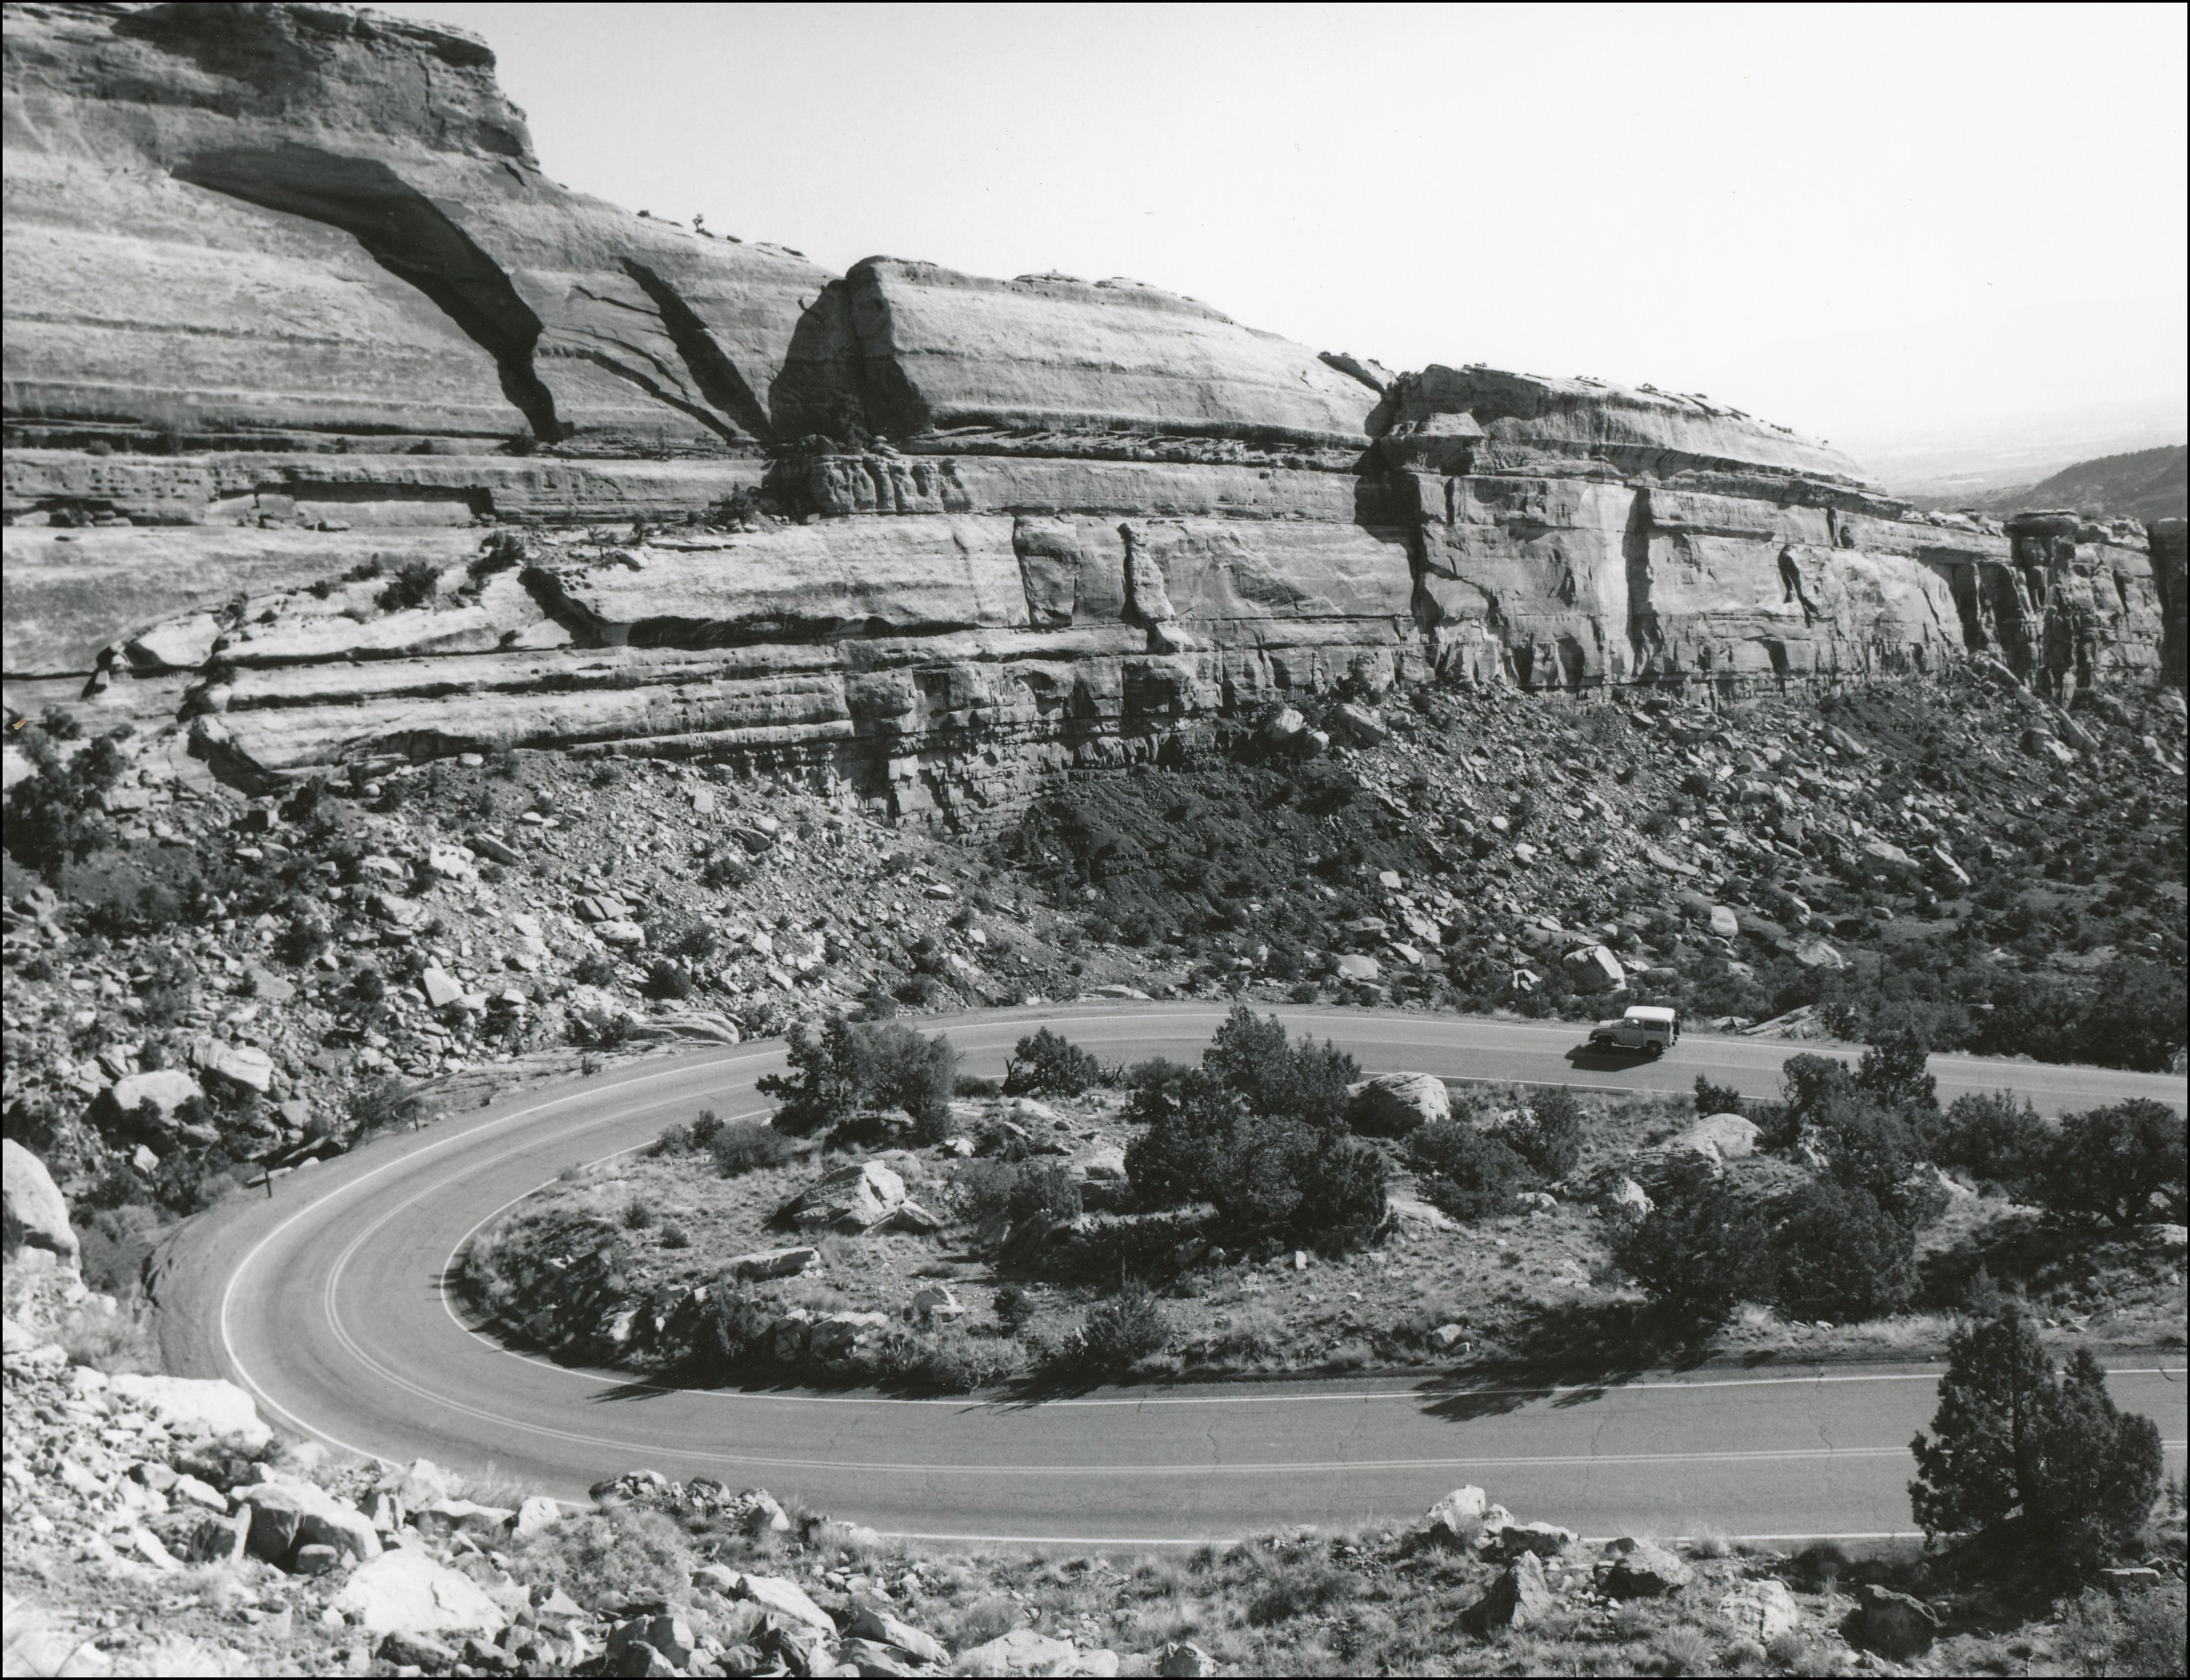 Large switchback on a paved road in a rocky mountain area